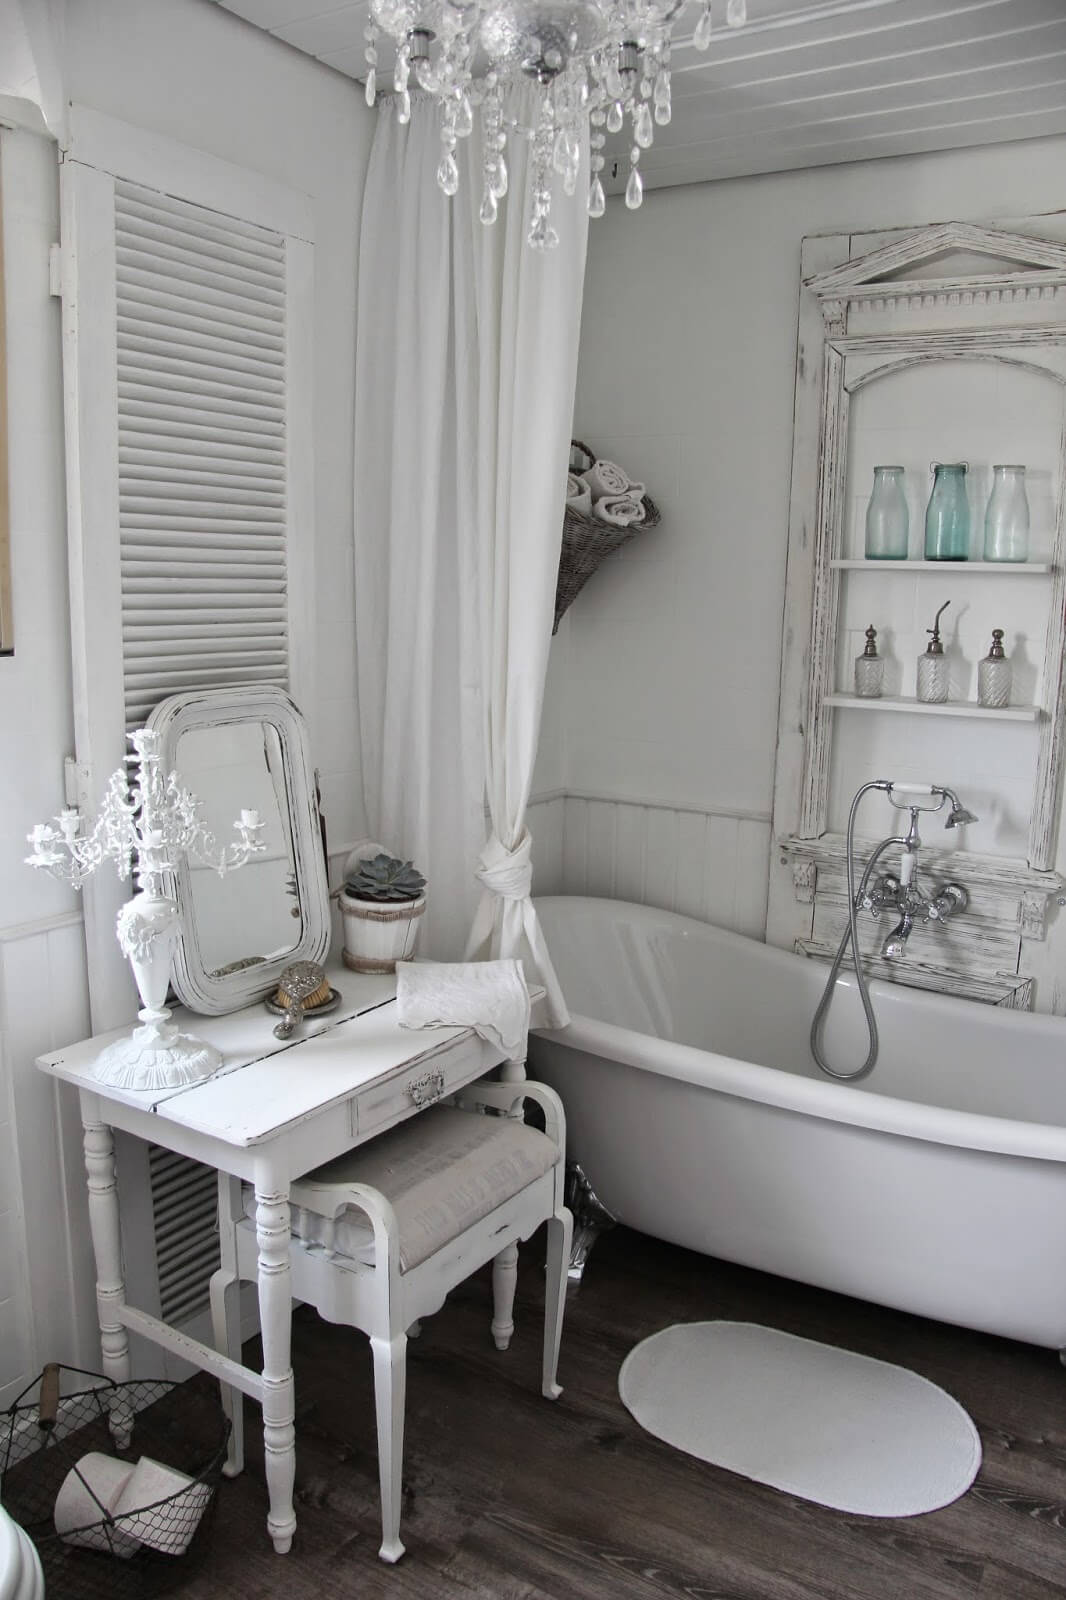 Badezimmer Deko Shabby Chic 15 Lovely Shabby Chic Bathroom Decor Ideas Style Motivation